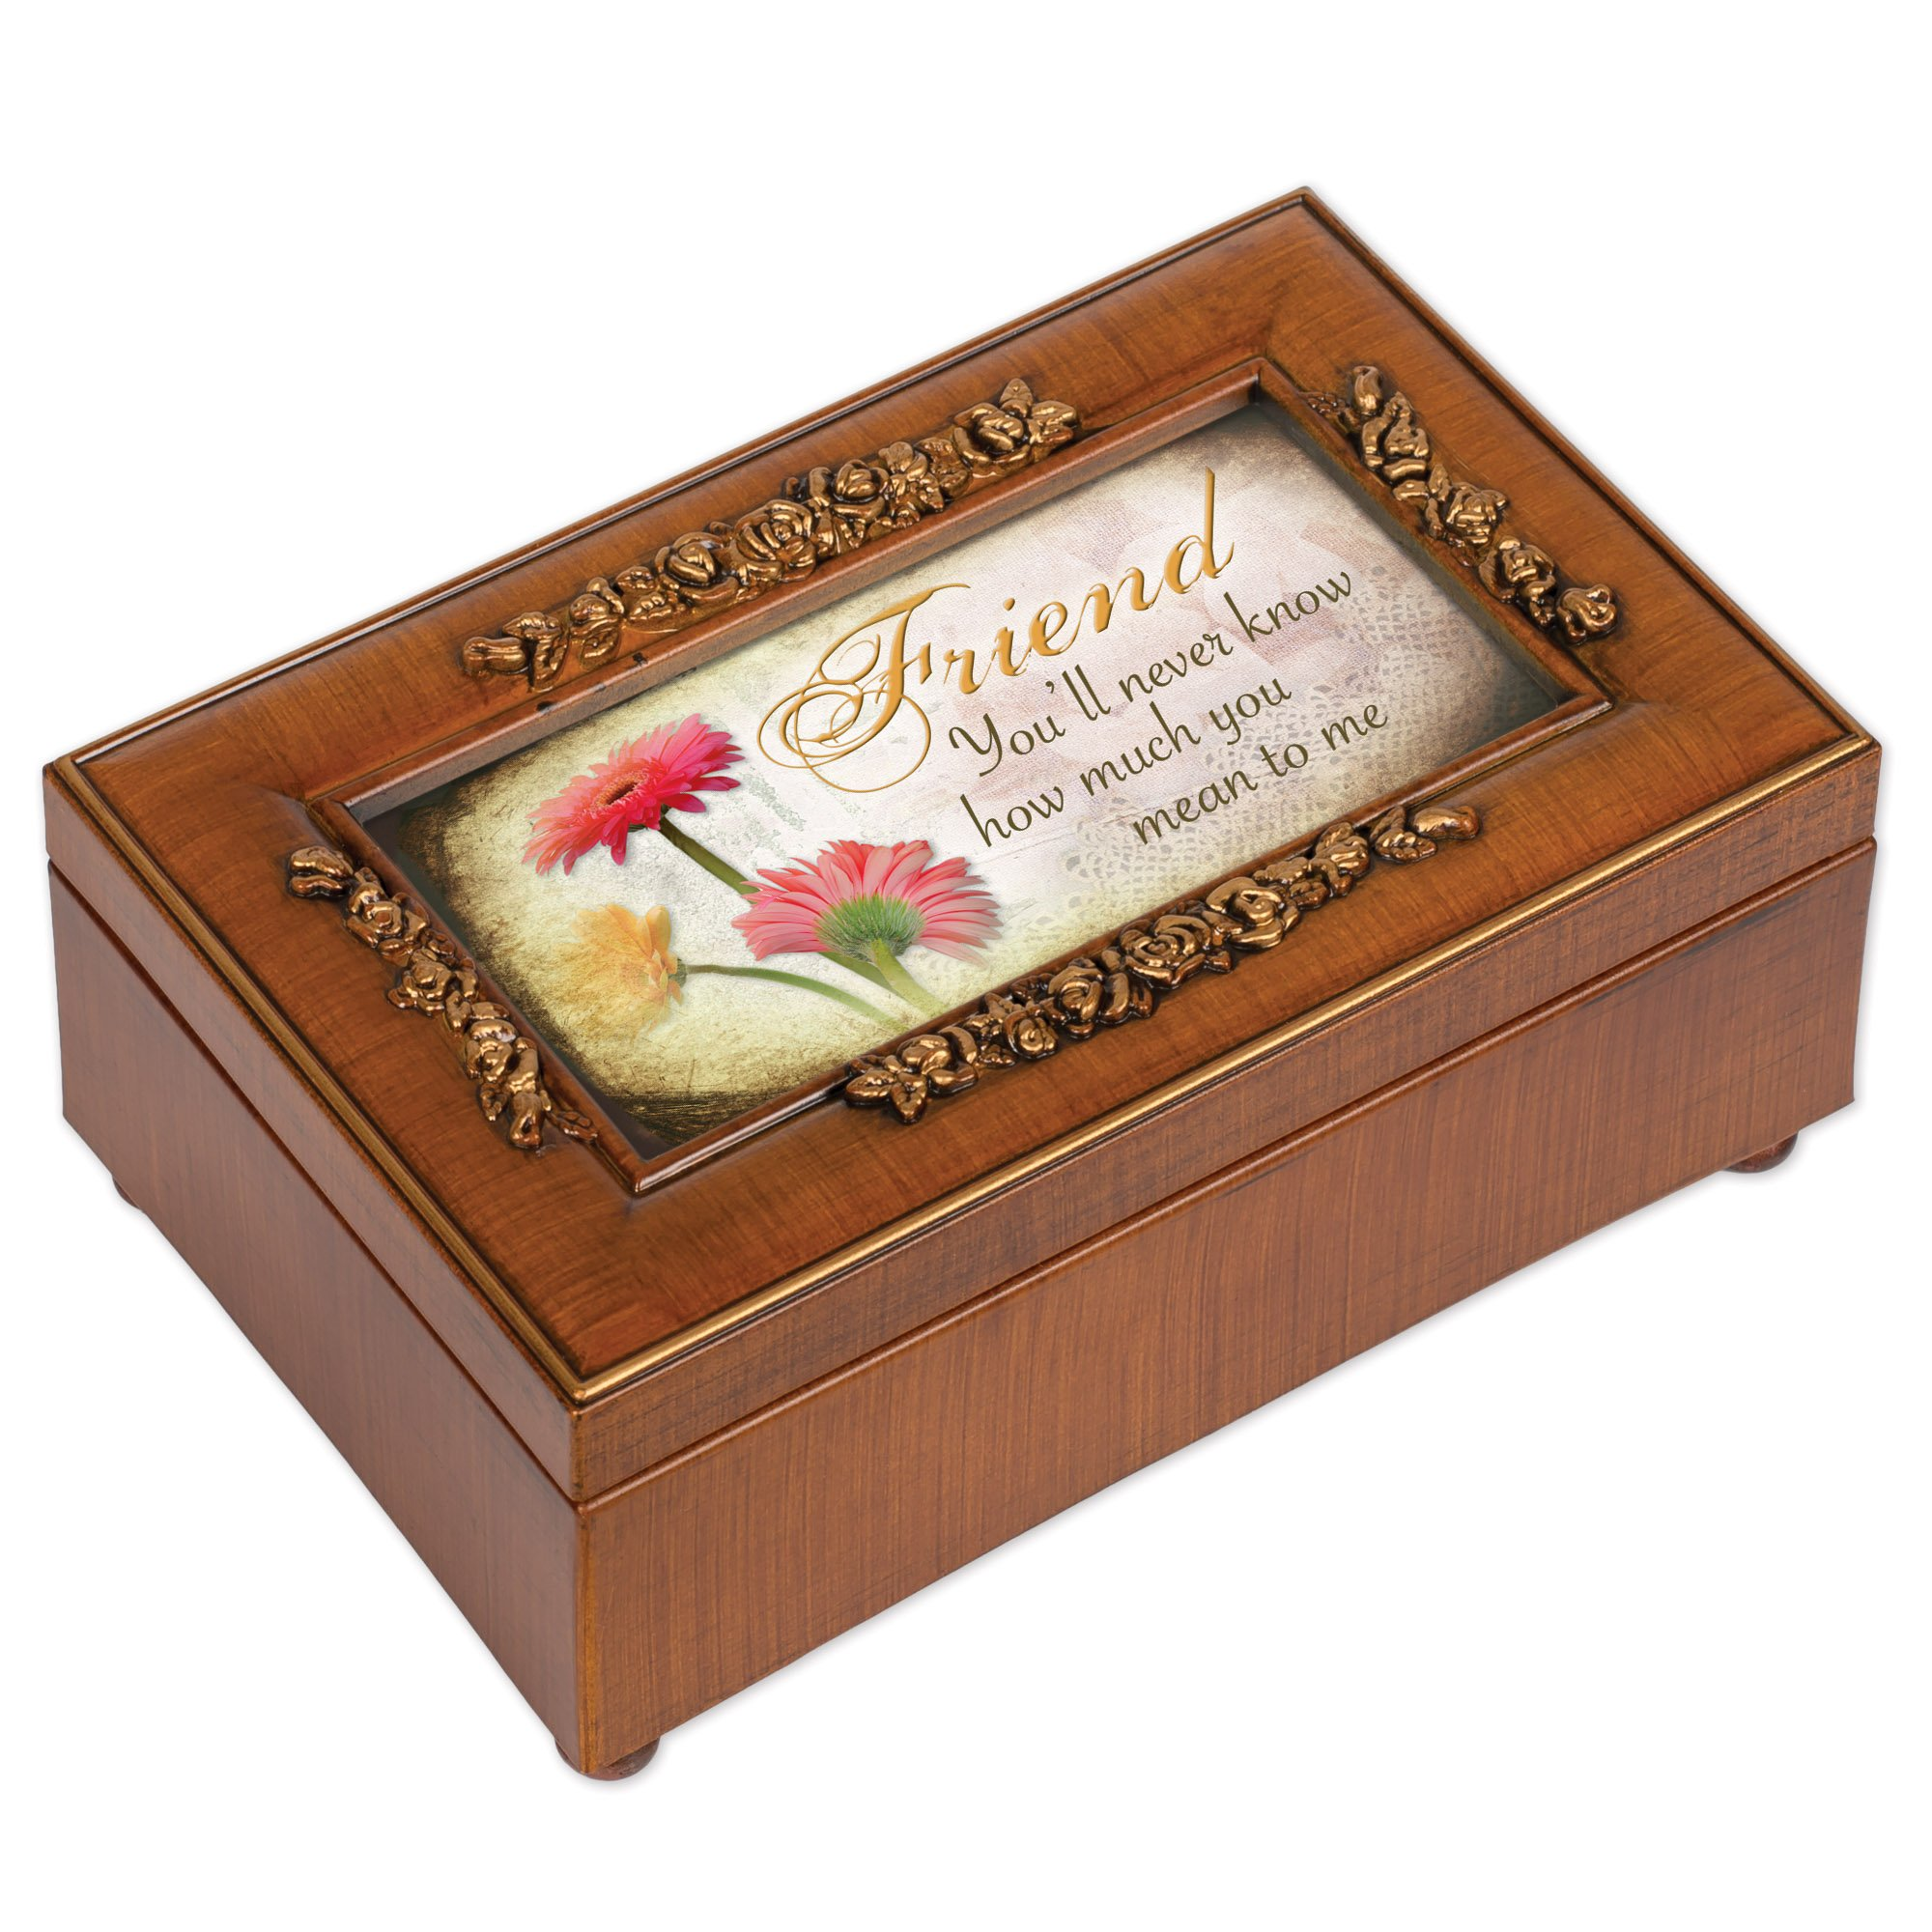 Cottage Garden Friend Woodgrain Petite Rose Music Box/Jewelry Box Plays That�S What Friends Are